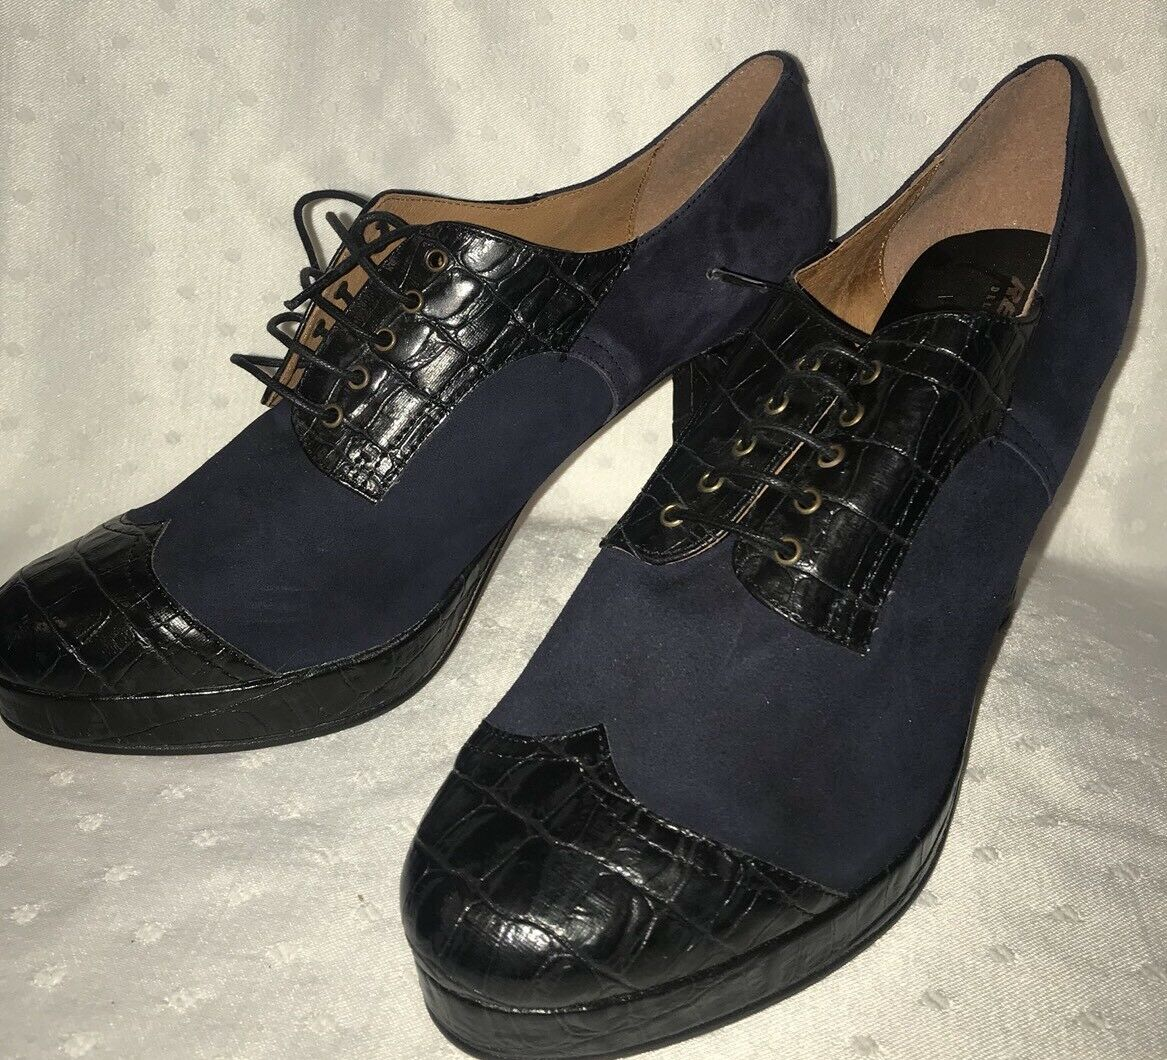 Re-Mix Classic Vintage Deluxe  Gramercy  Lace-up Oxfords - sz 9.5 NEW NO BOX